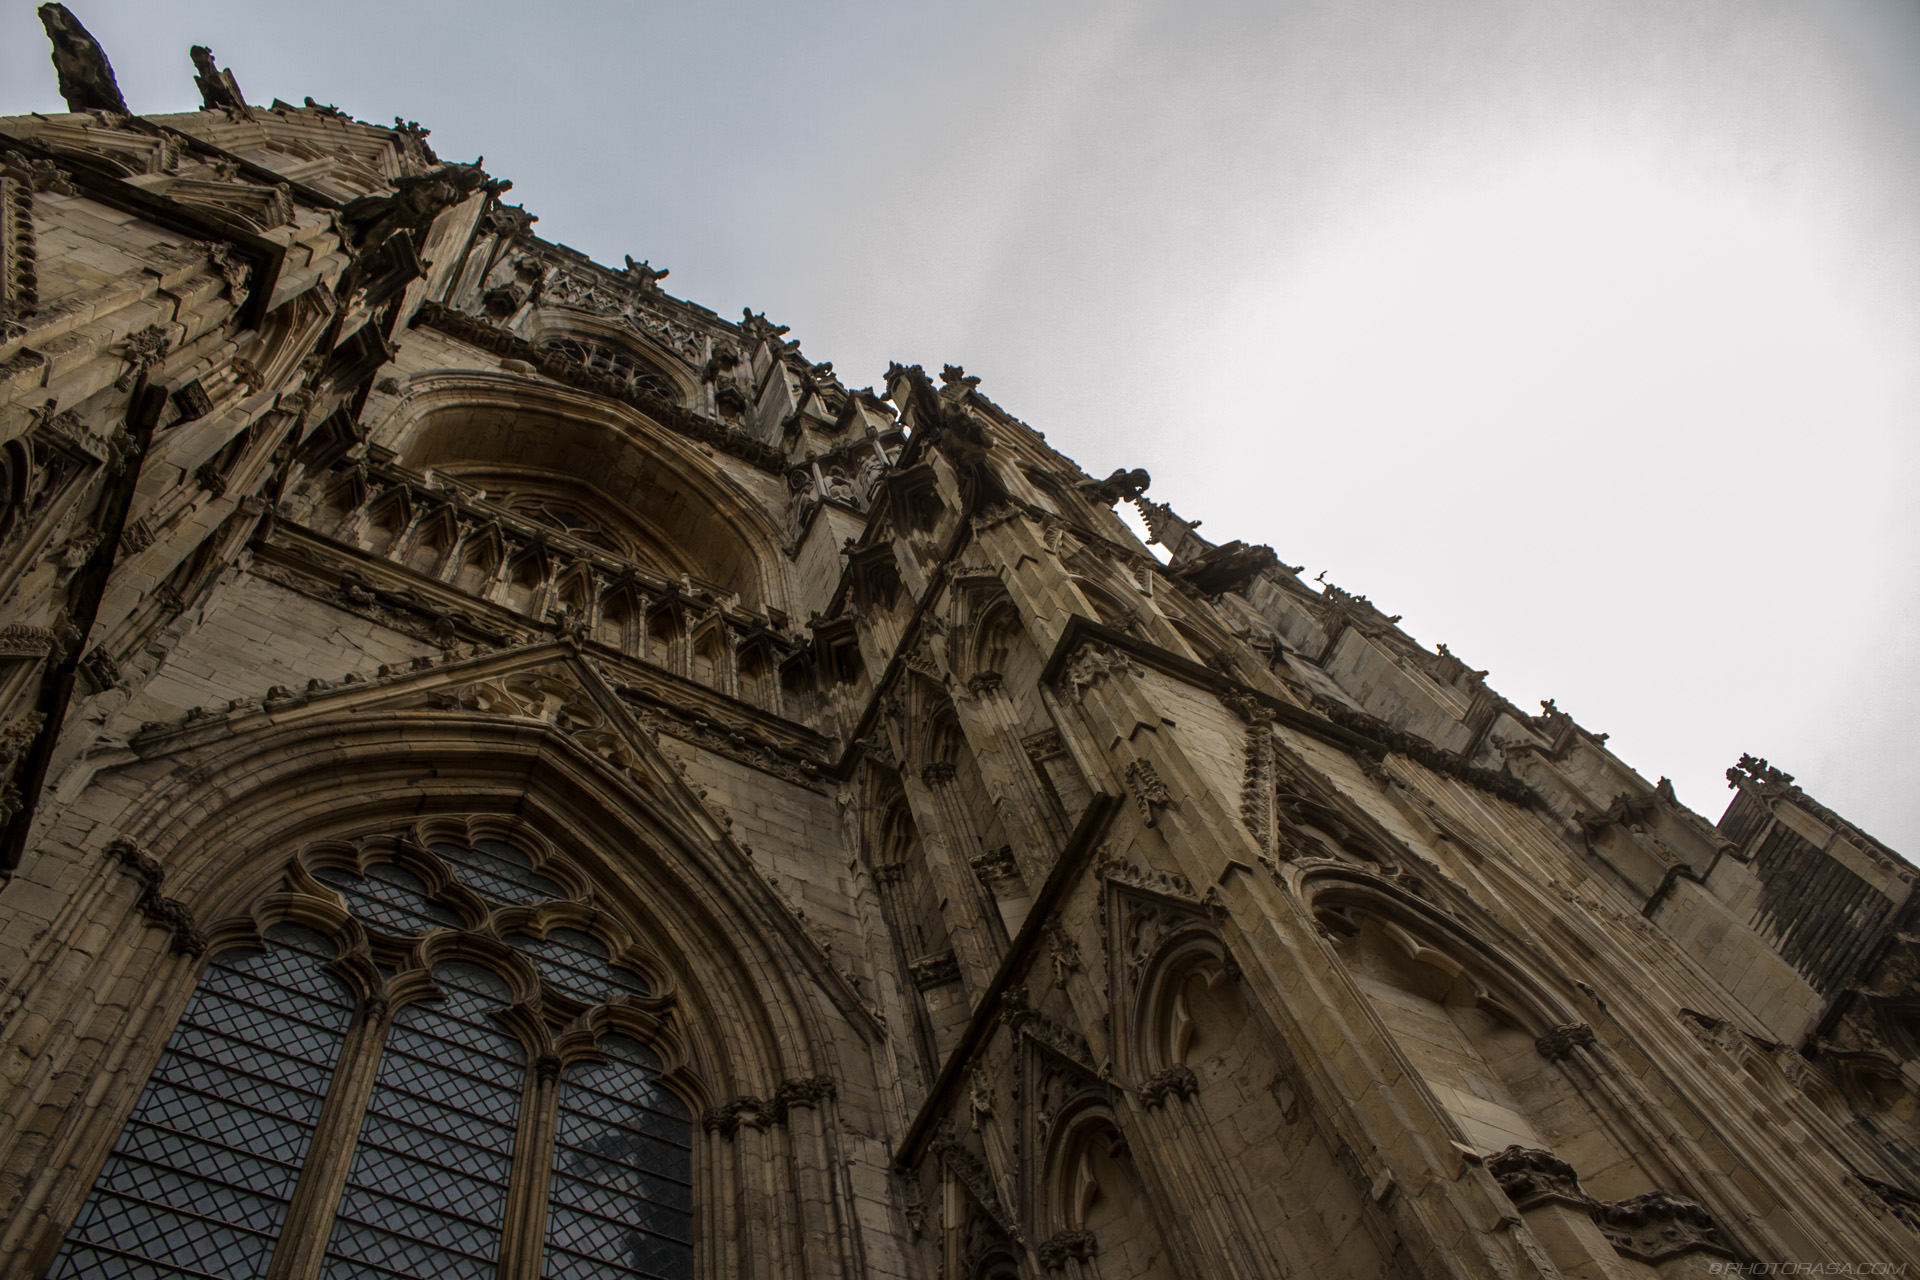 http://photorasa.com/places/yorkminster-cathedral/attachment/cathedral-detail-and-sky/